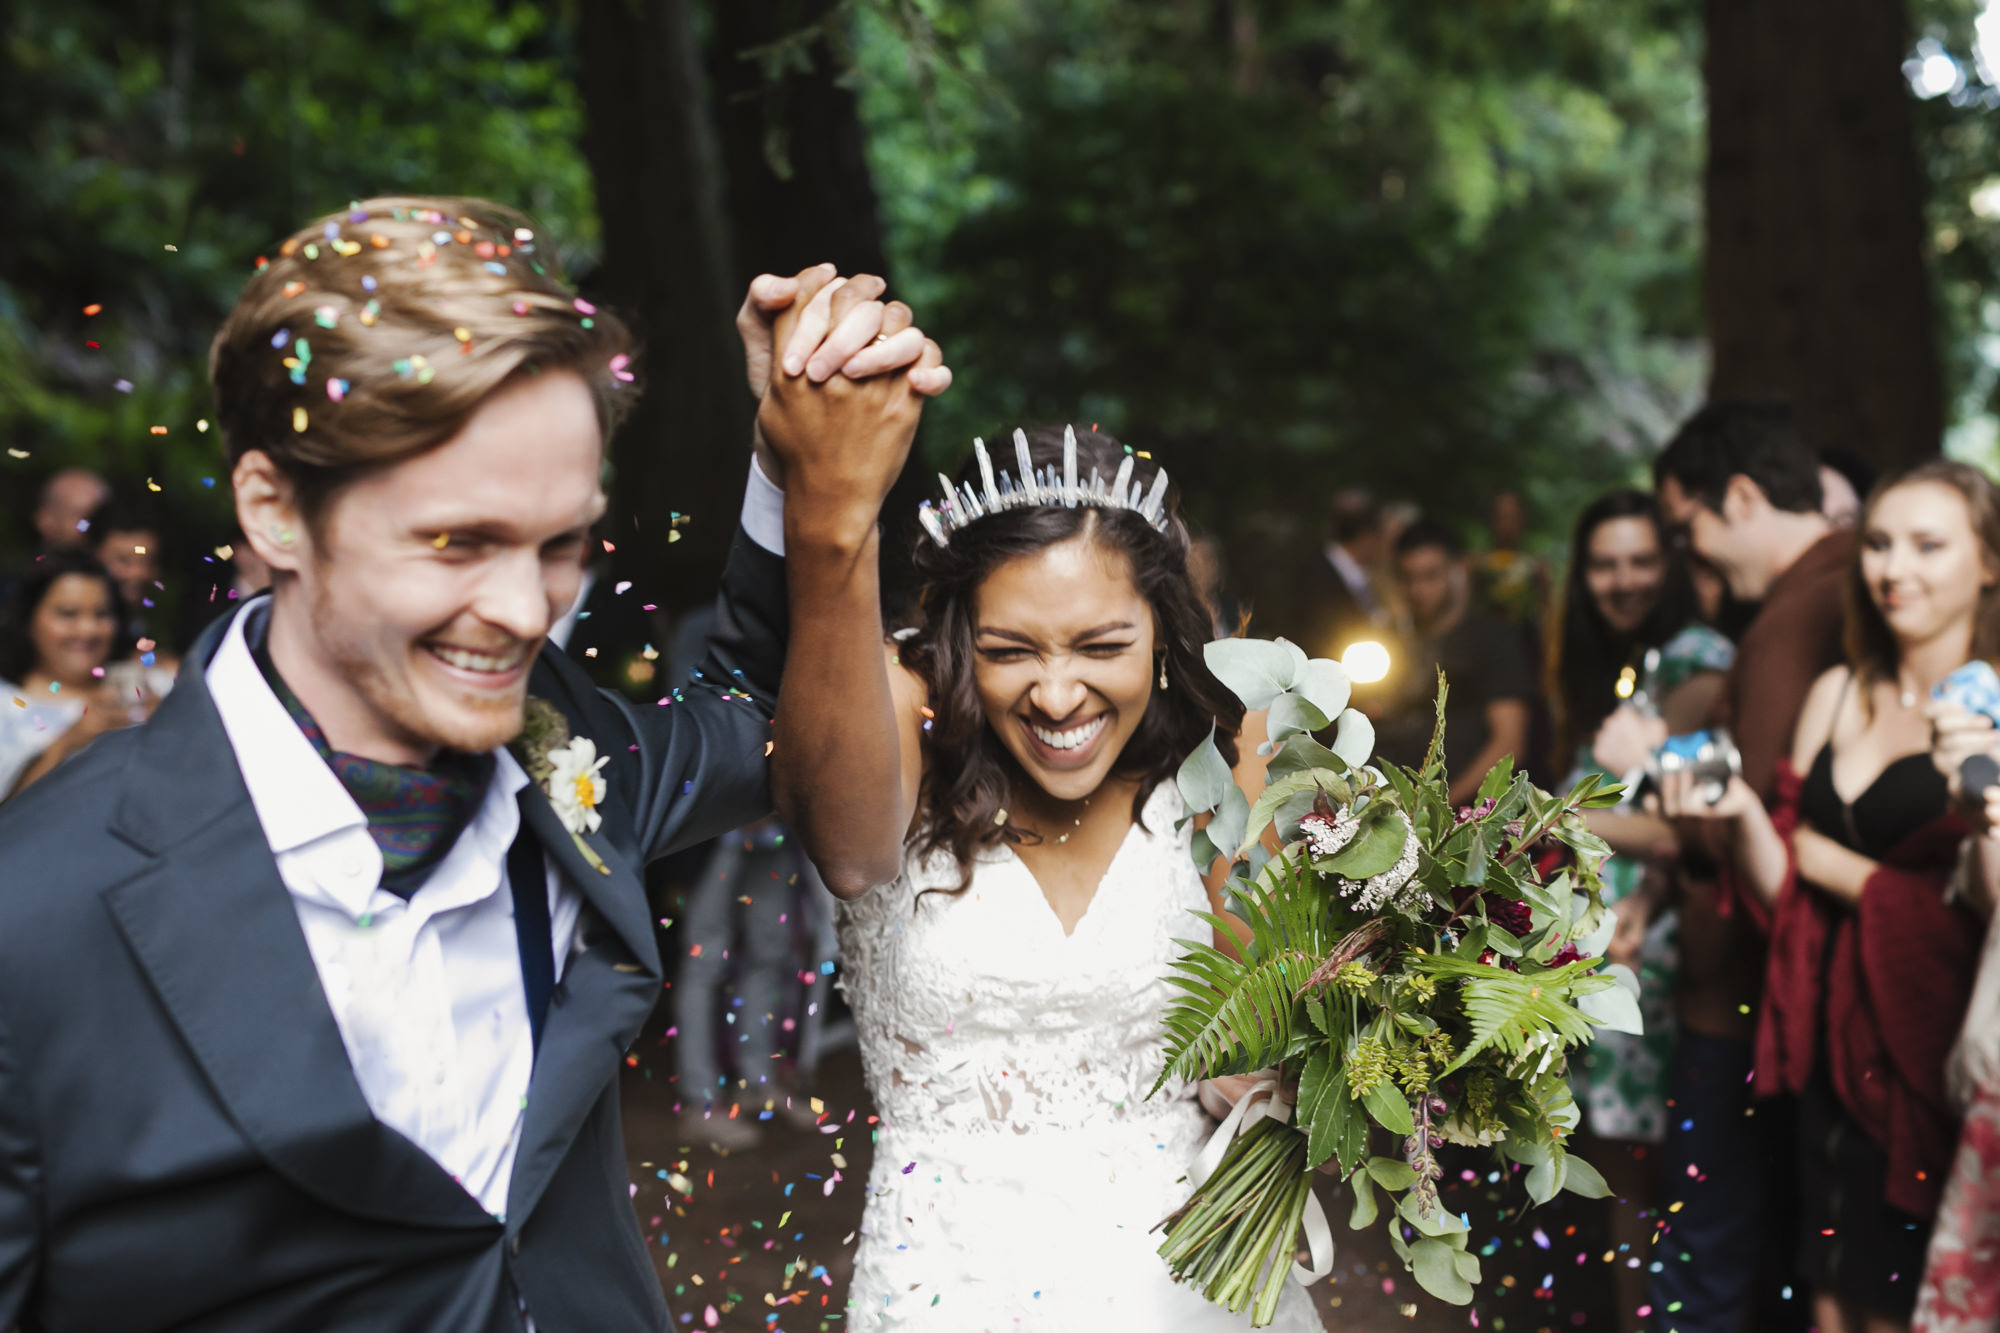 Wedding couple exit their redwood ceremony amidst confetti